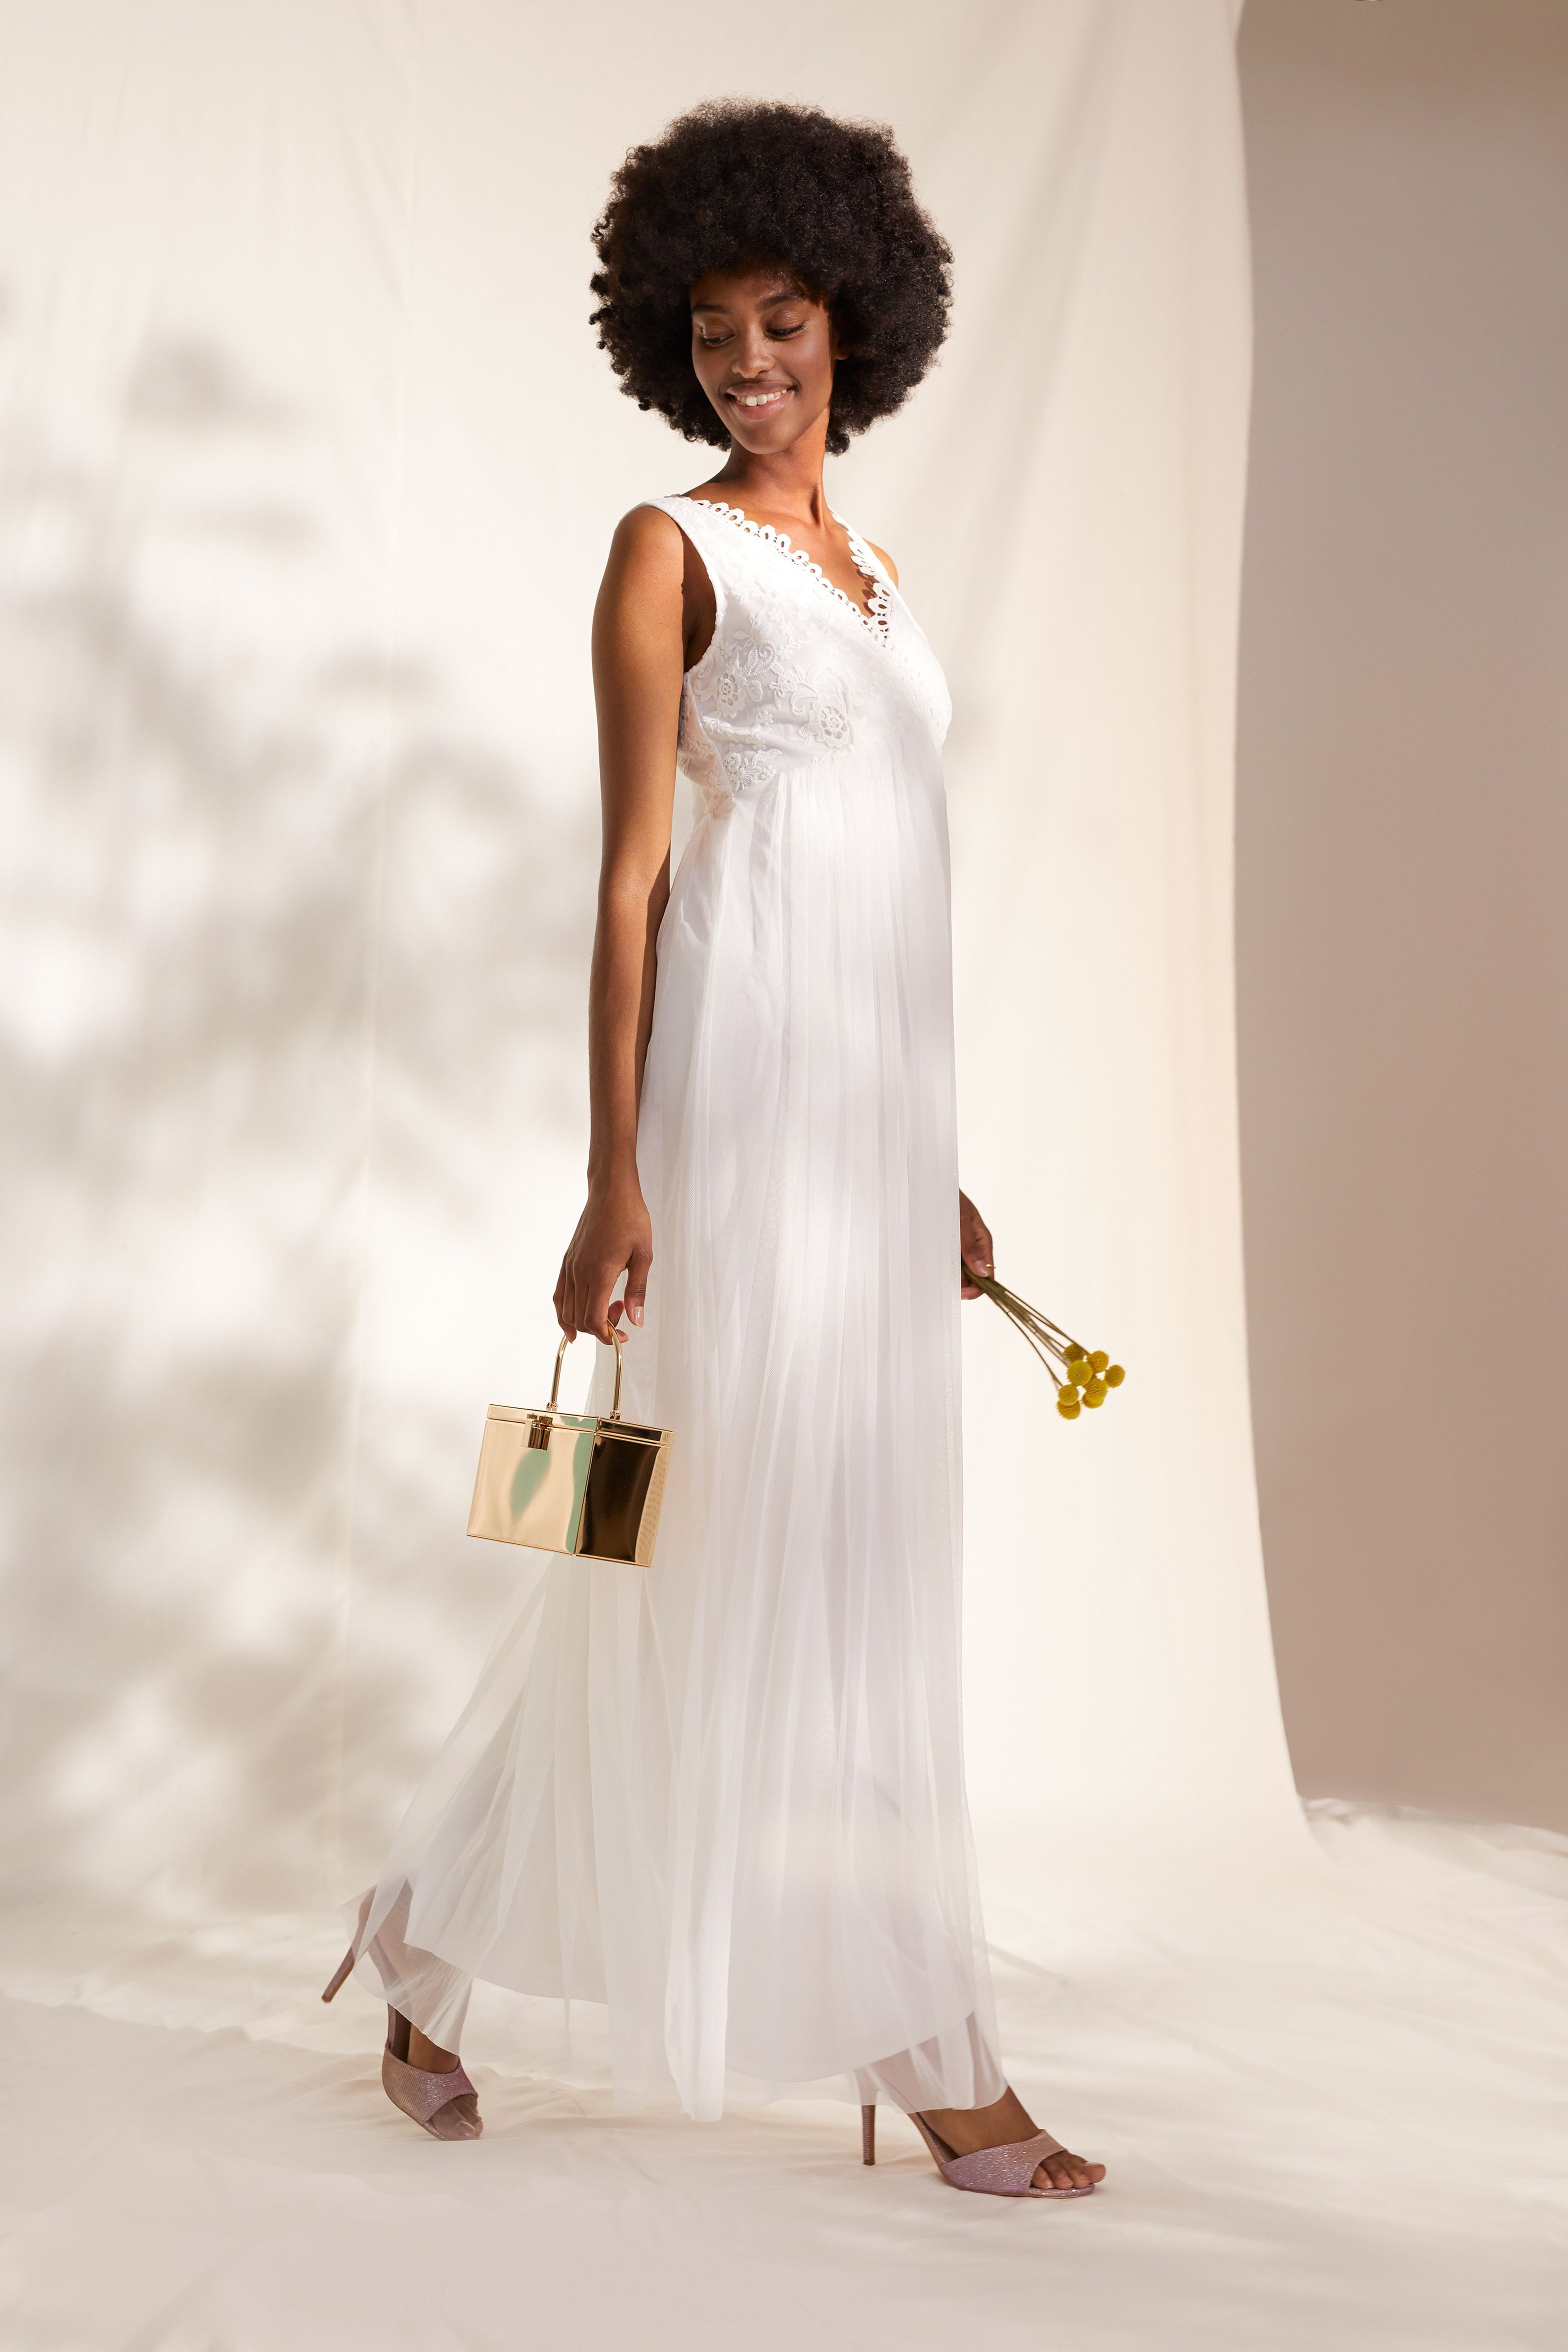 Wedding dress in a vintage look -  Discover the wedding vintage look in your ABOUT YOU online shop. 💍💎  - #CelebrityStyle2018 #CelebrityStylemen #CelebrityStylenight #CelebrityStyleparty #Dress #vintage #wedding